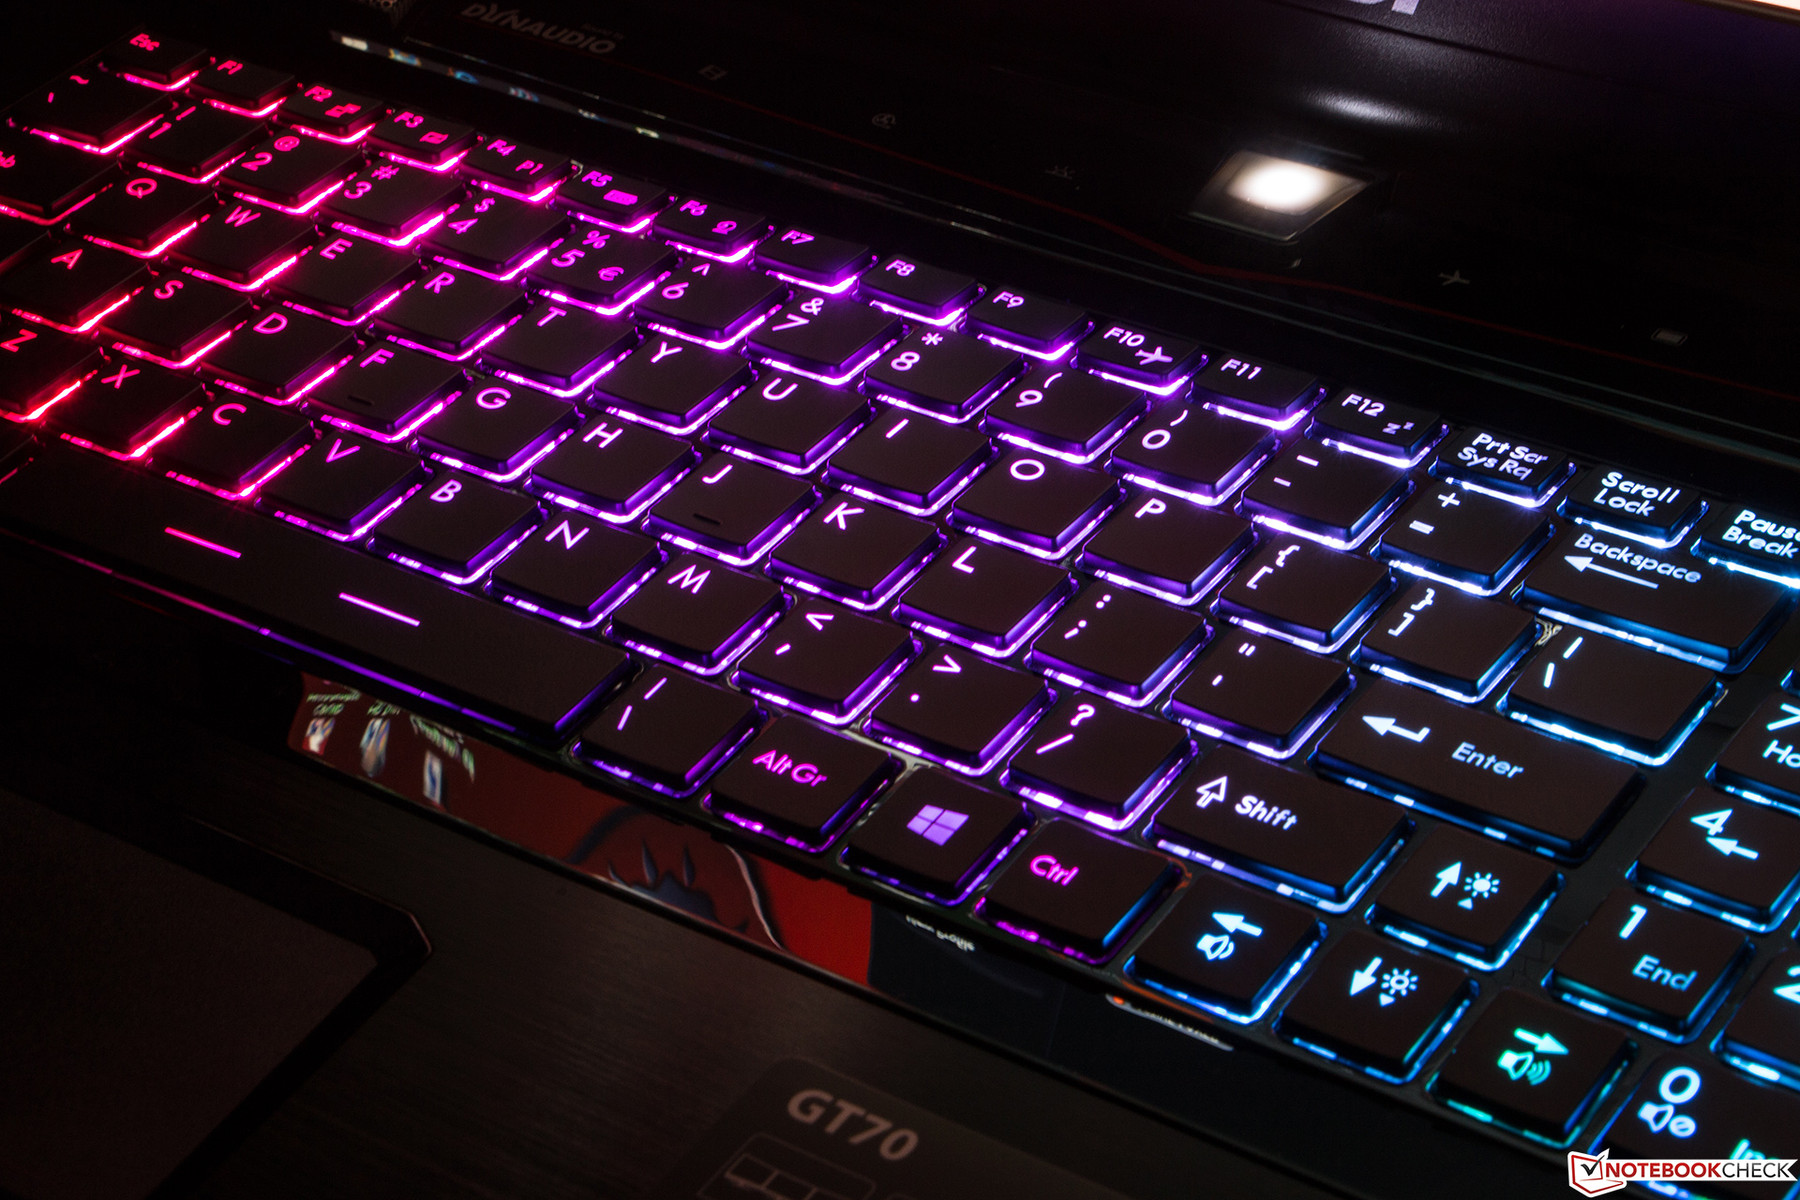 Review Msi Gt70 2pe 890us Gaming Notebook Notebookcheck